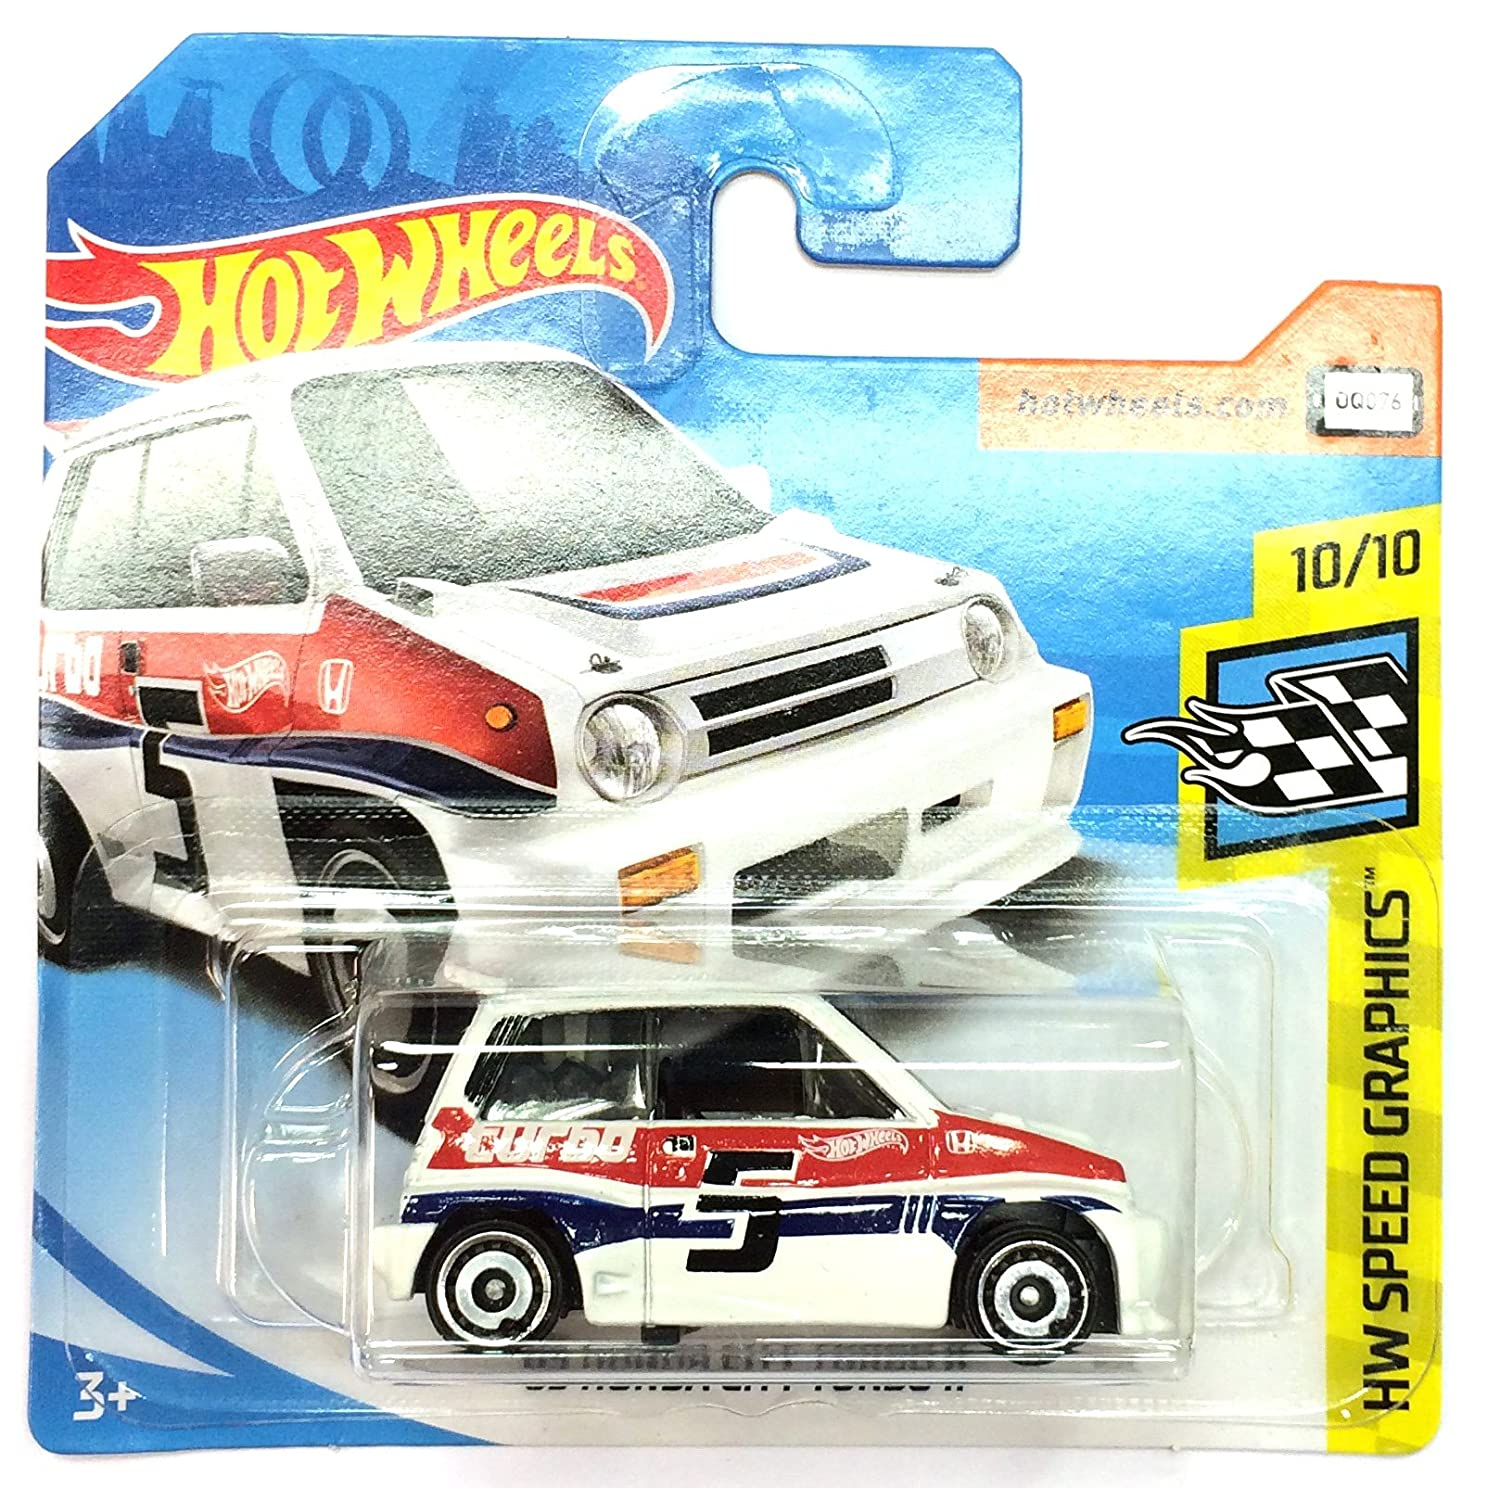 HW HotWheels FJV43 - 1985 Honda City Turbo II #5 blanco Speed Graphics 10/10: Amazon.es: Juguetes y juegos